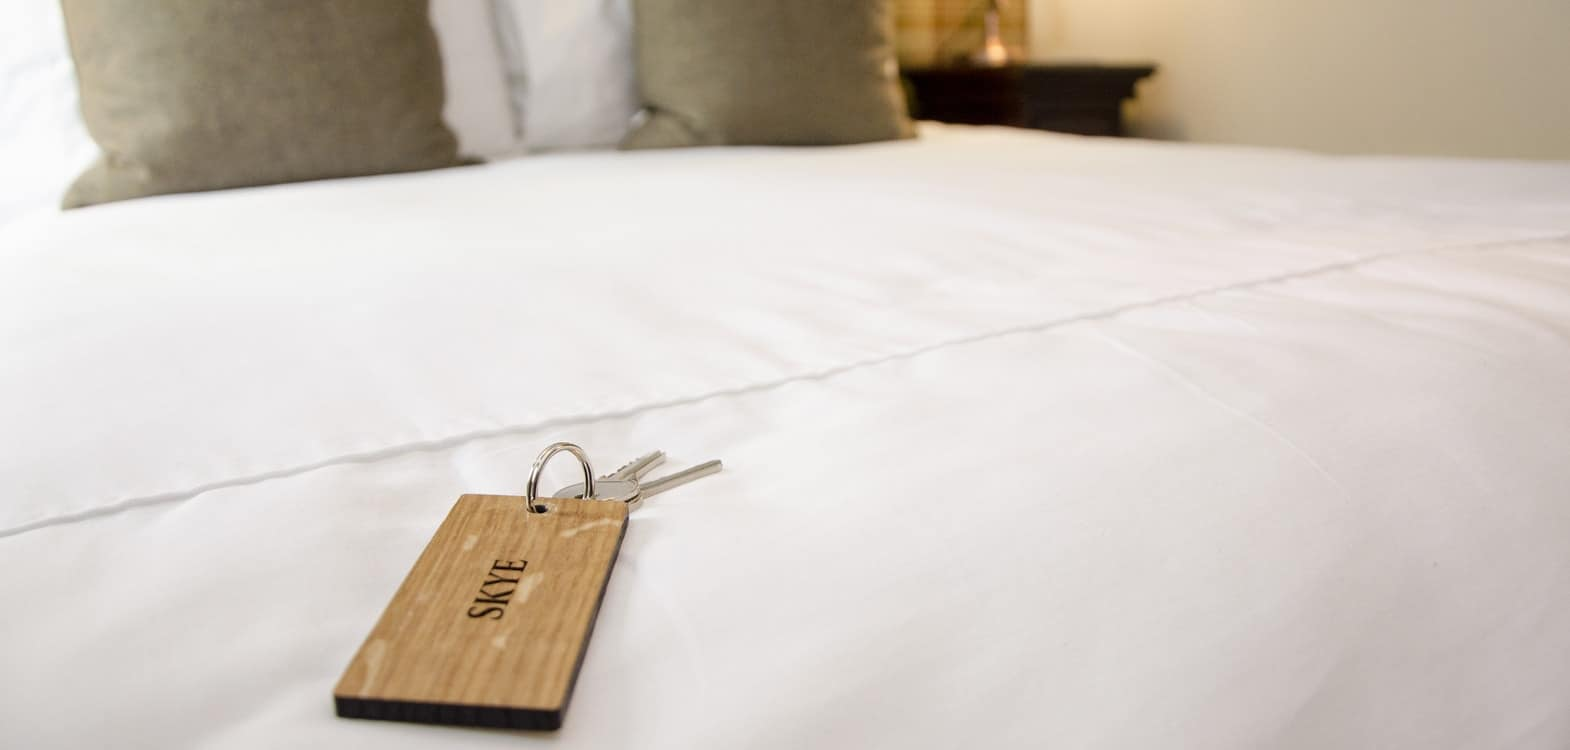 Room key for Firhall Bed and Breakfast on a wooden key fob placed on a a bed